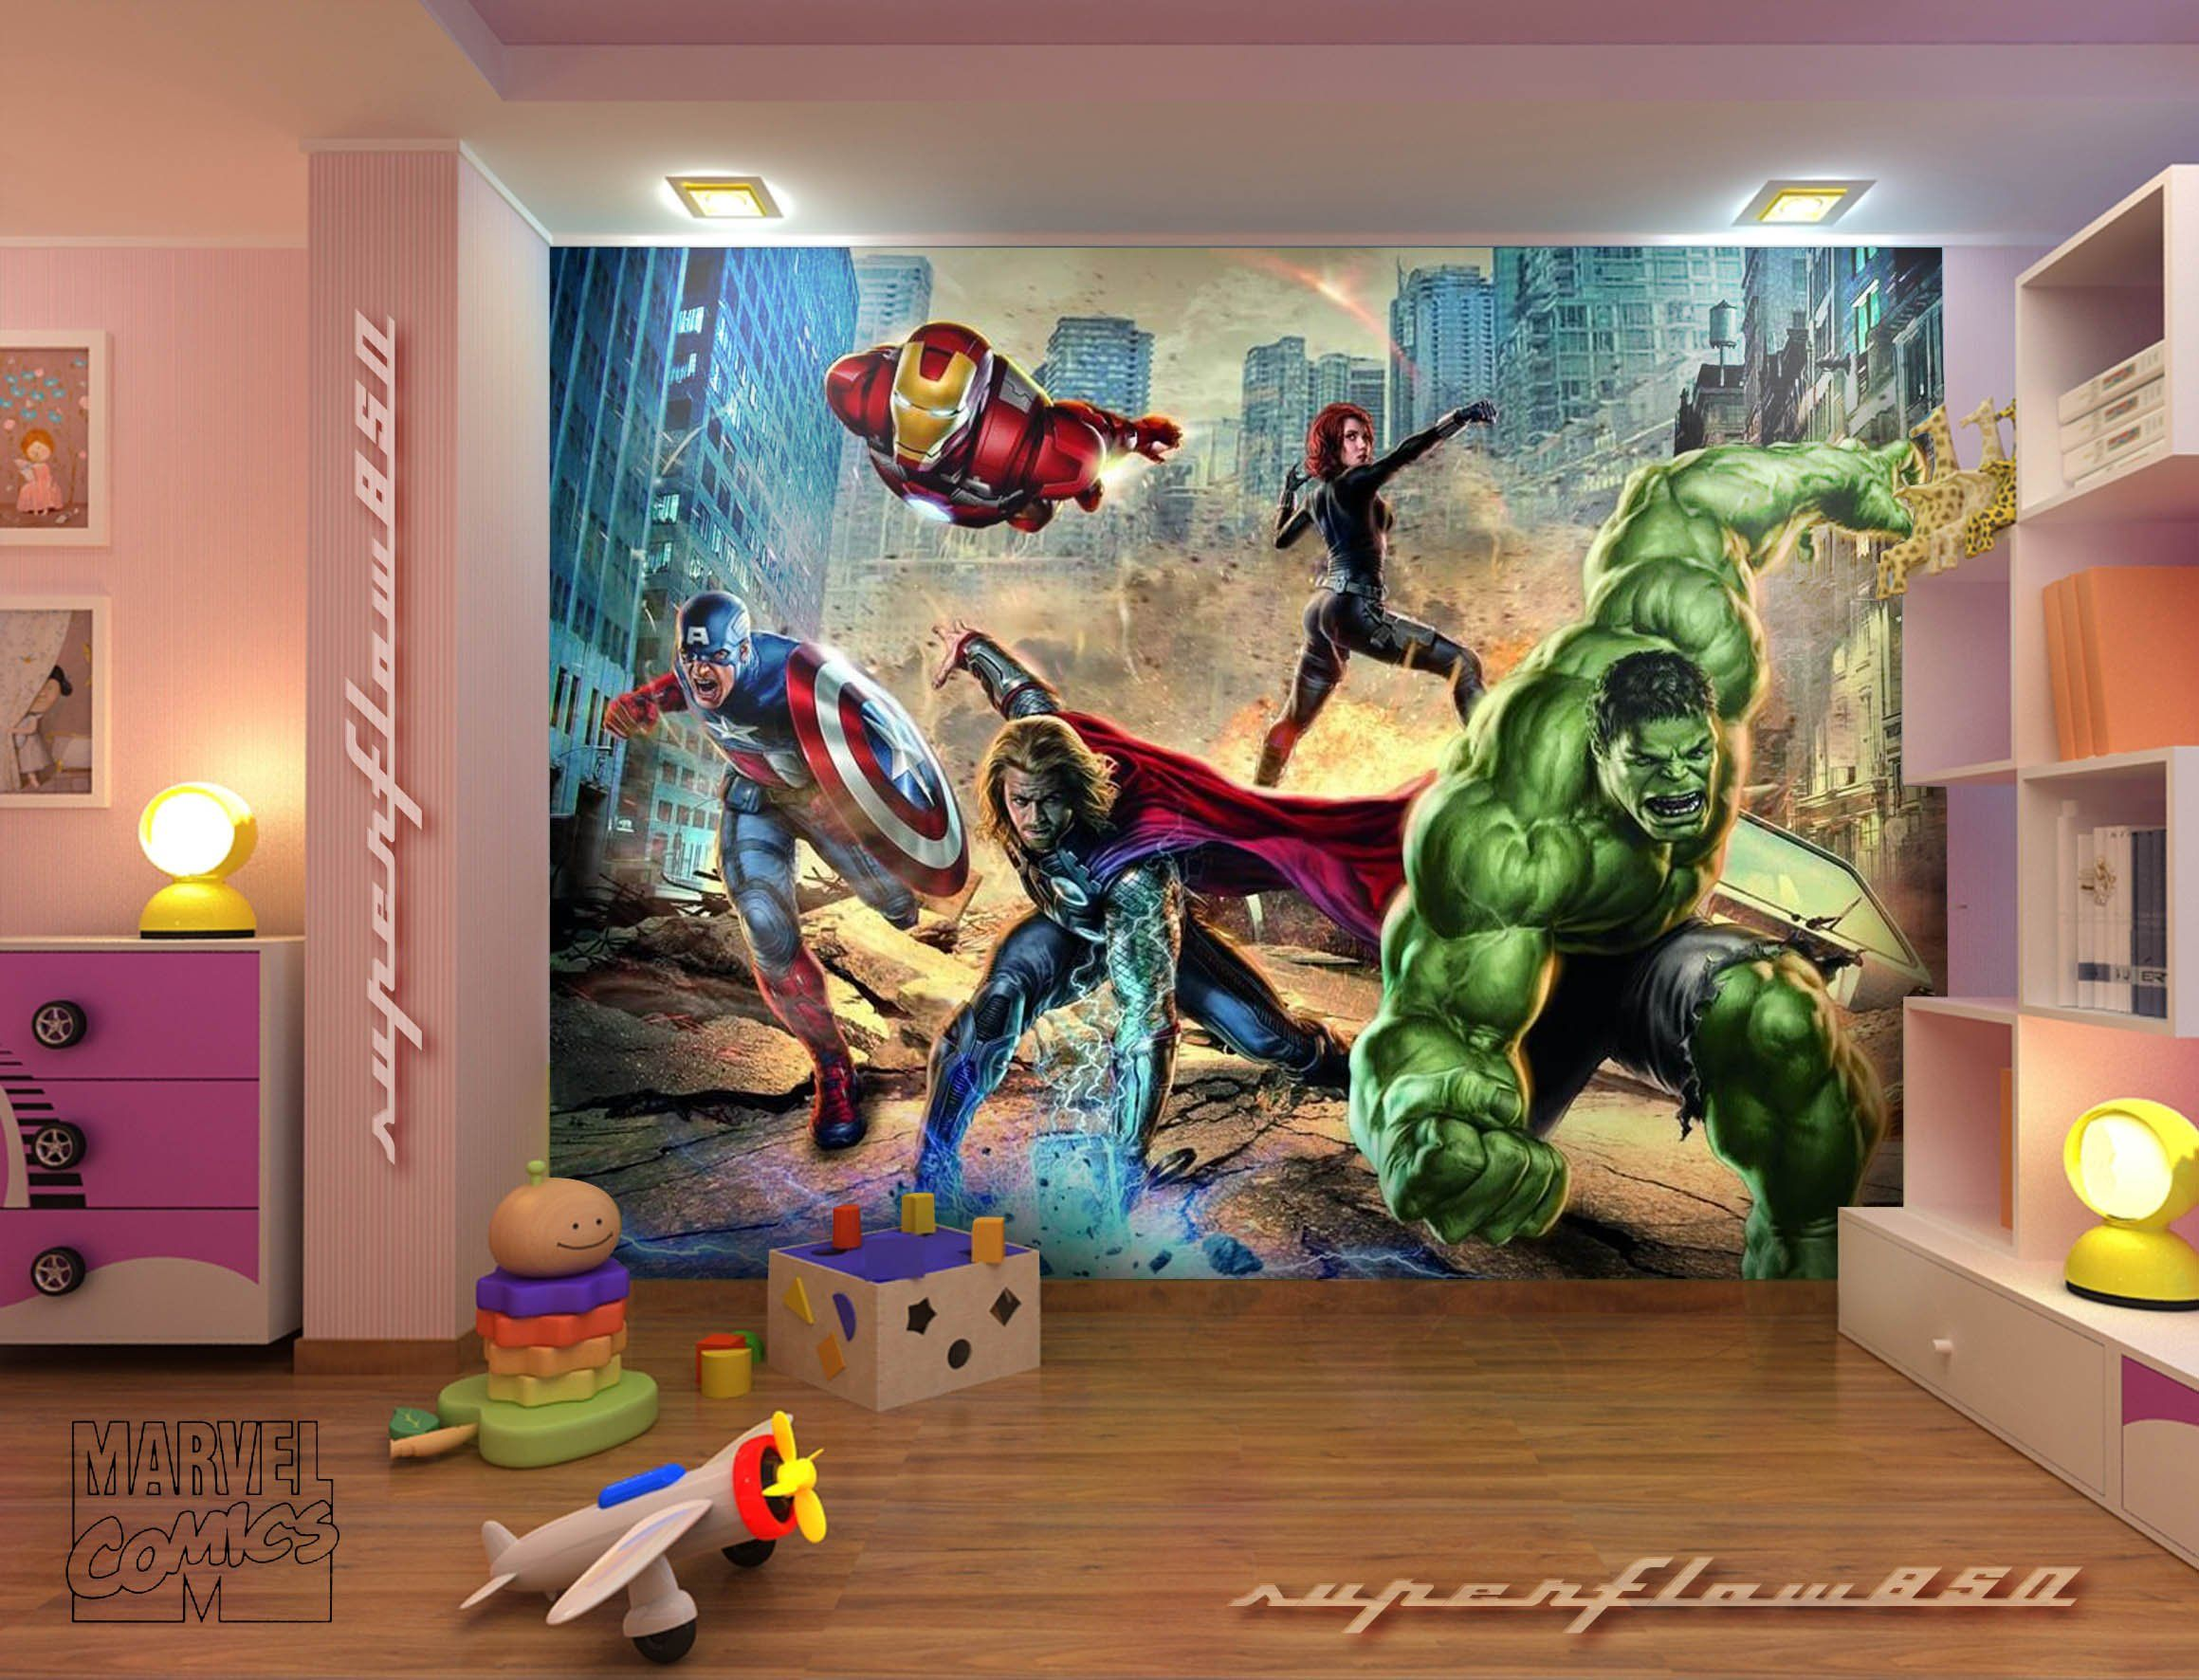 Avengers street rage marvel photo wallpaper wall mural for Children mural wallpaper